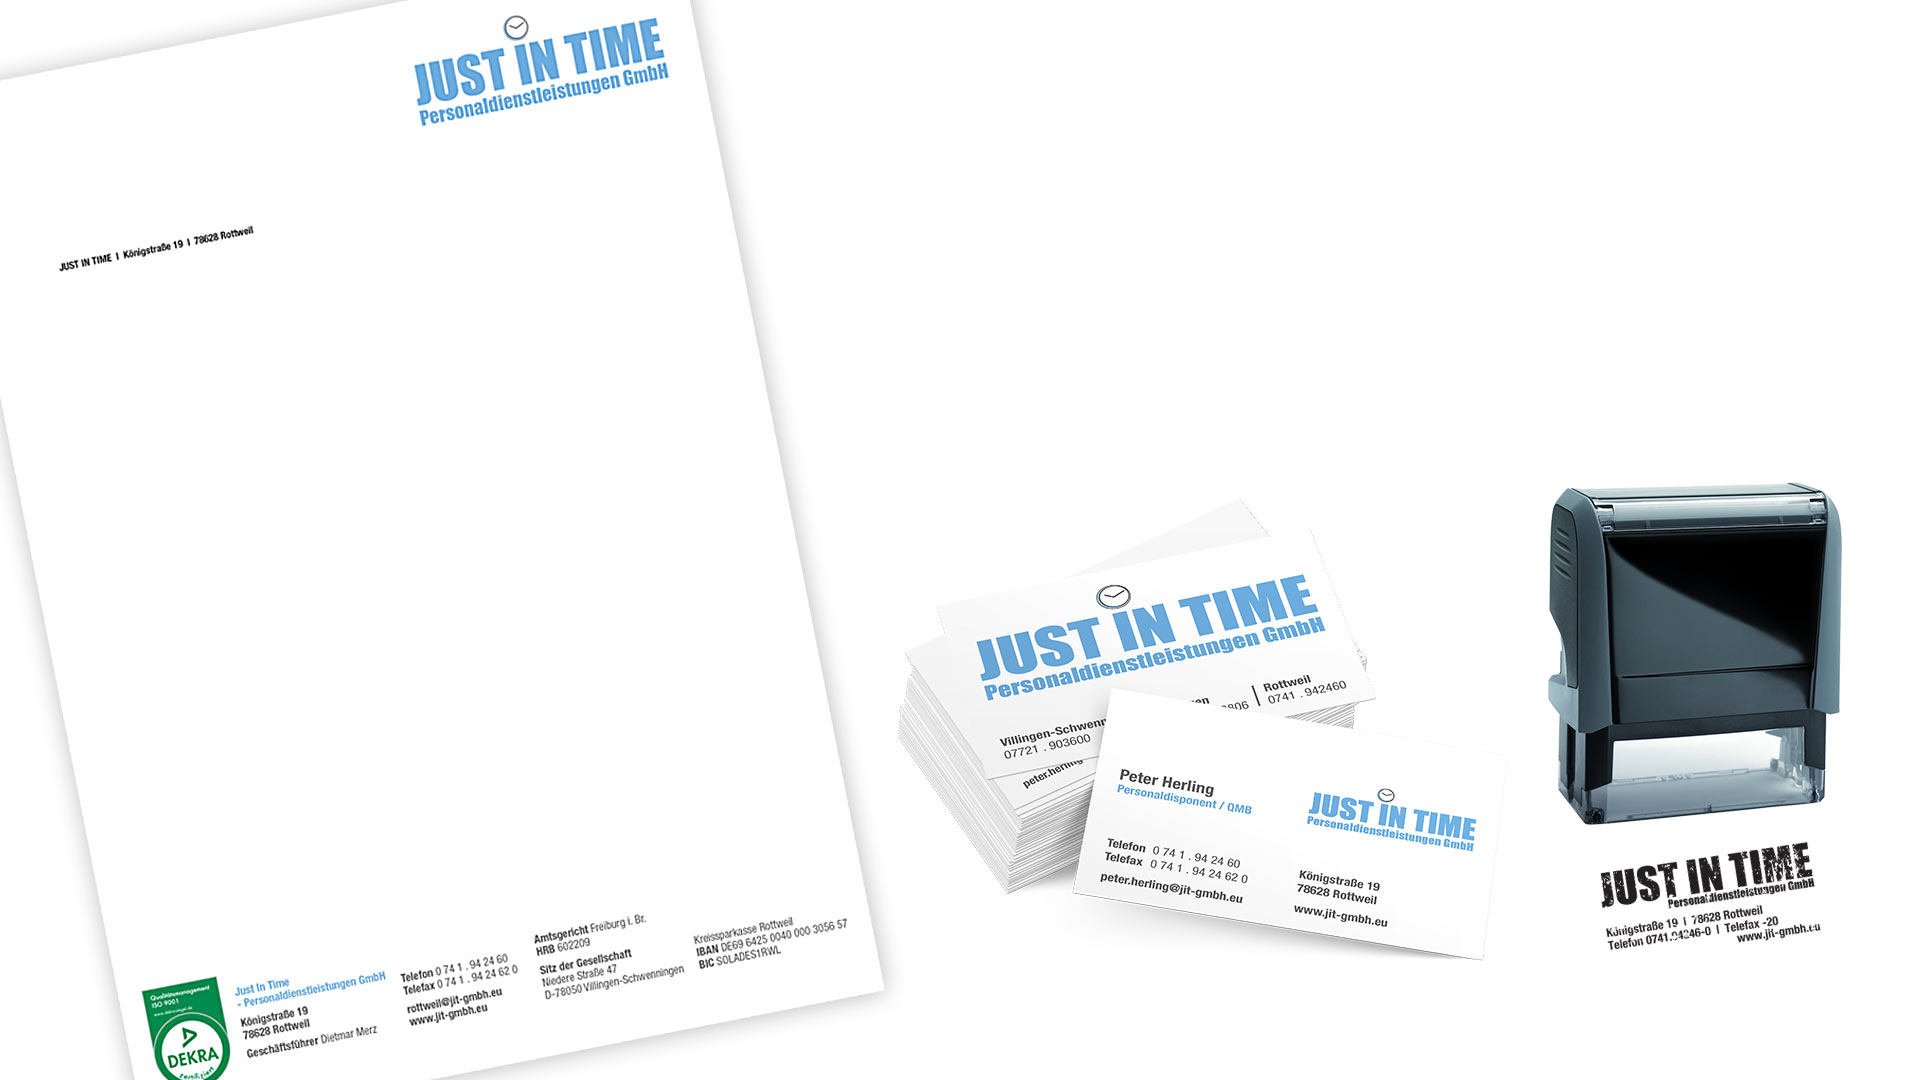 JUST IN TIME Personaldienst-leistungen GmbH